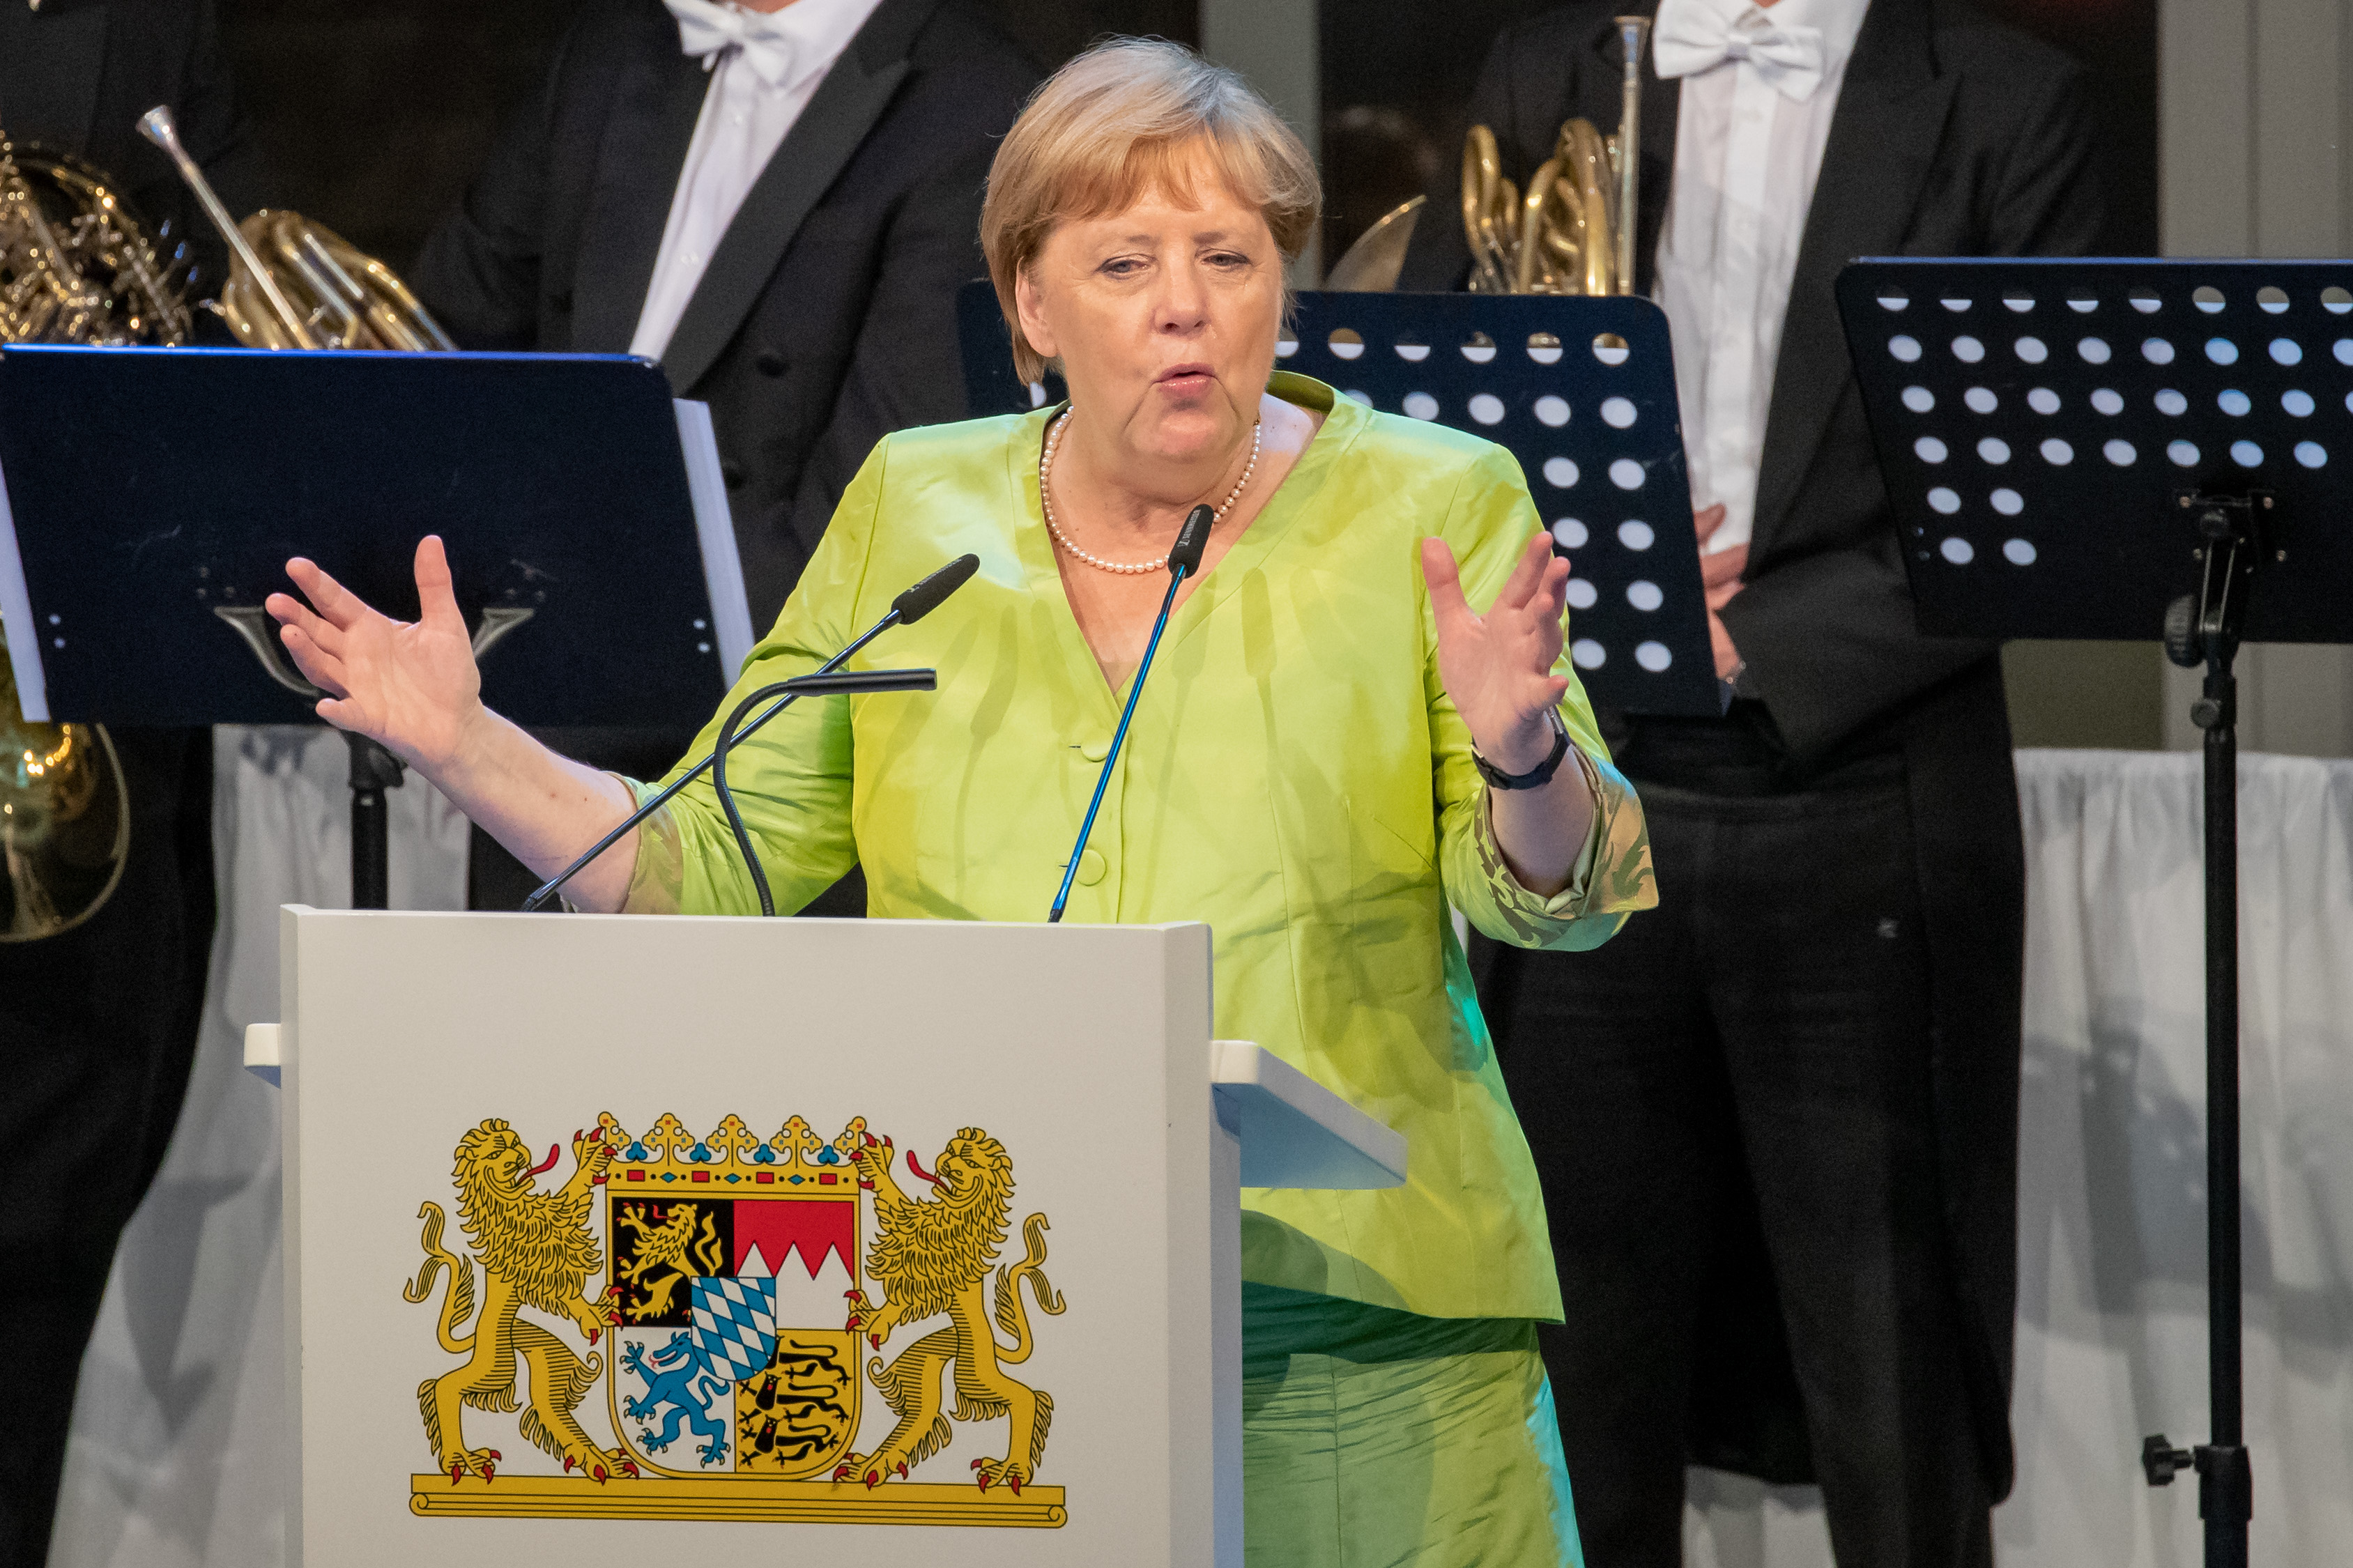 Angela Merkel gives speech to open Bayreuth festival 2019